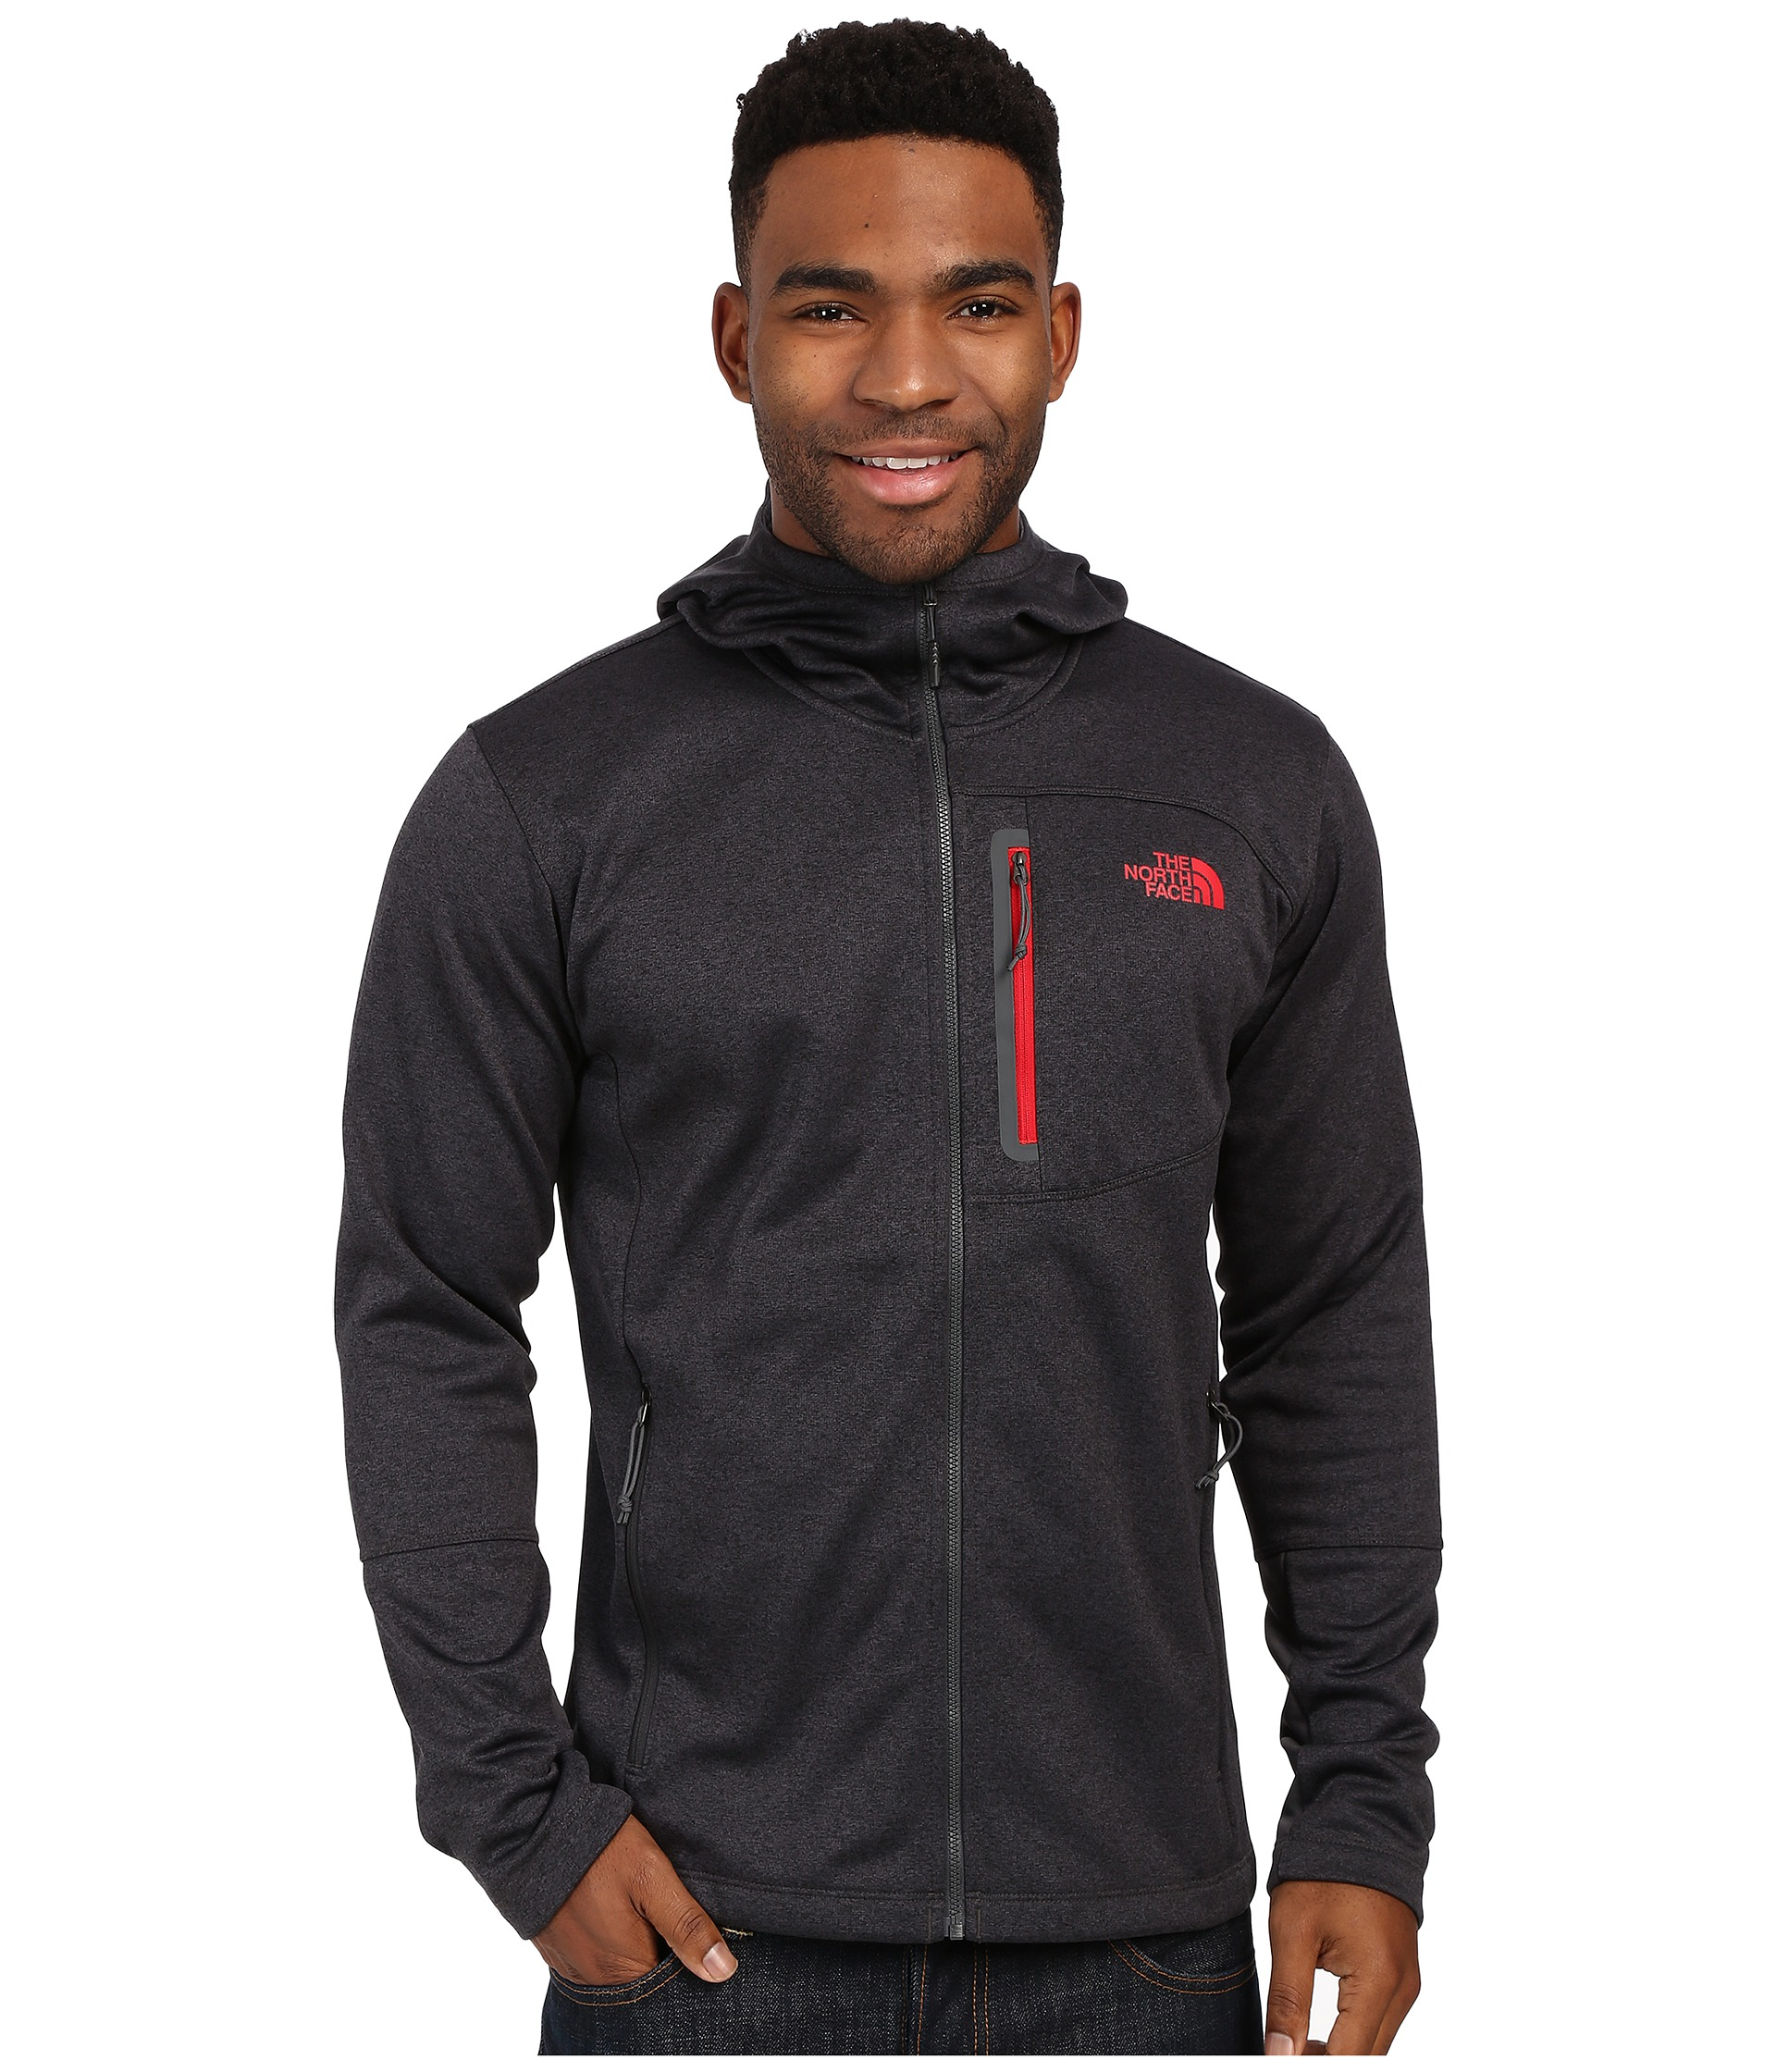 26164dcdda Lyst - The North Face Canyonlands Hoodie for Men